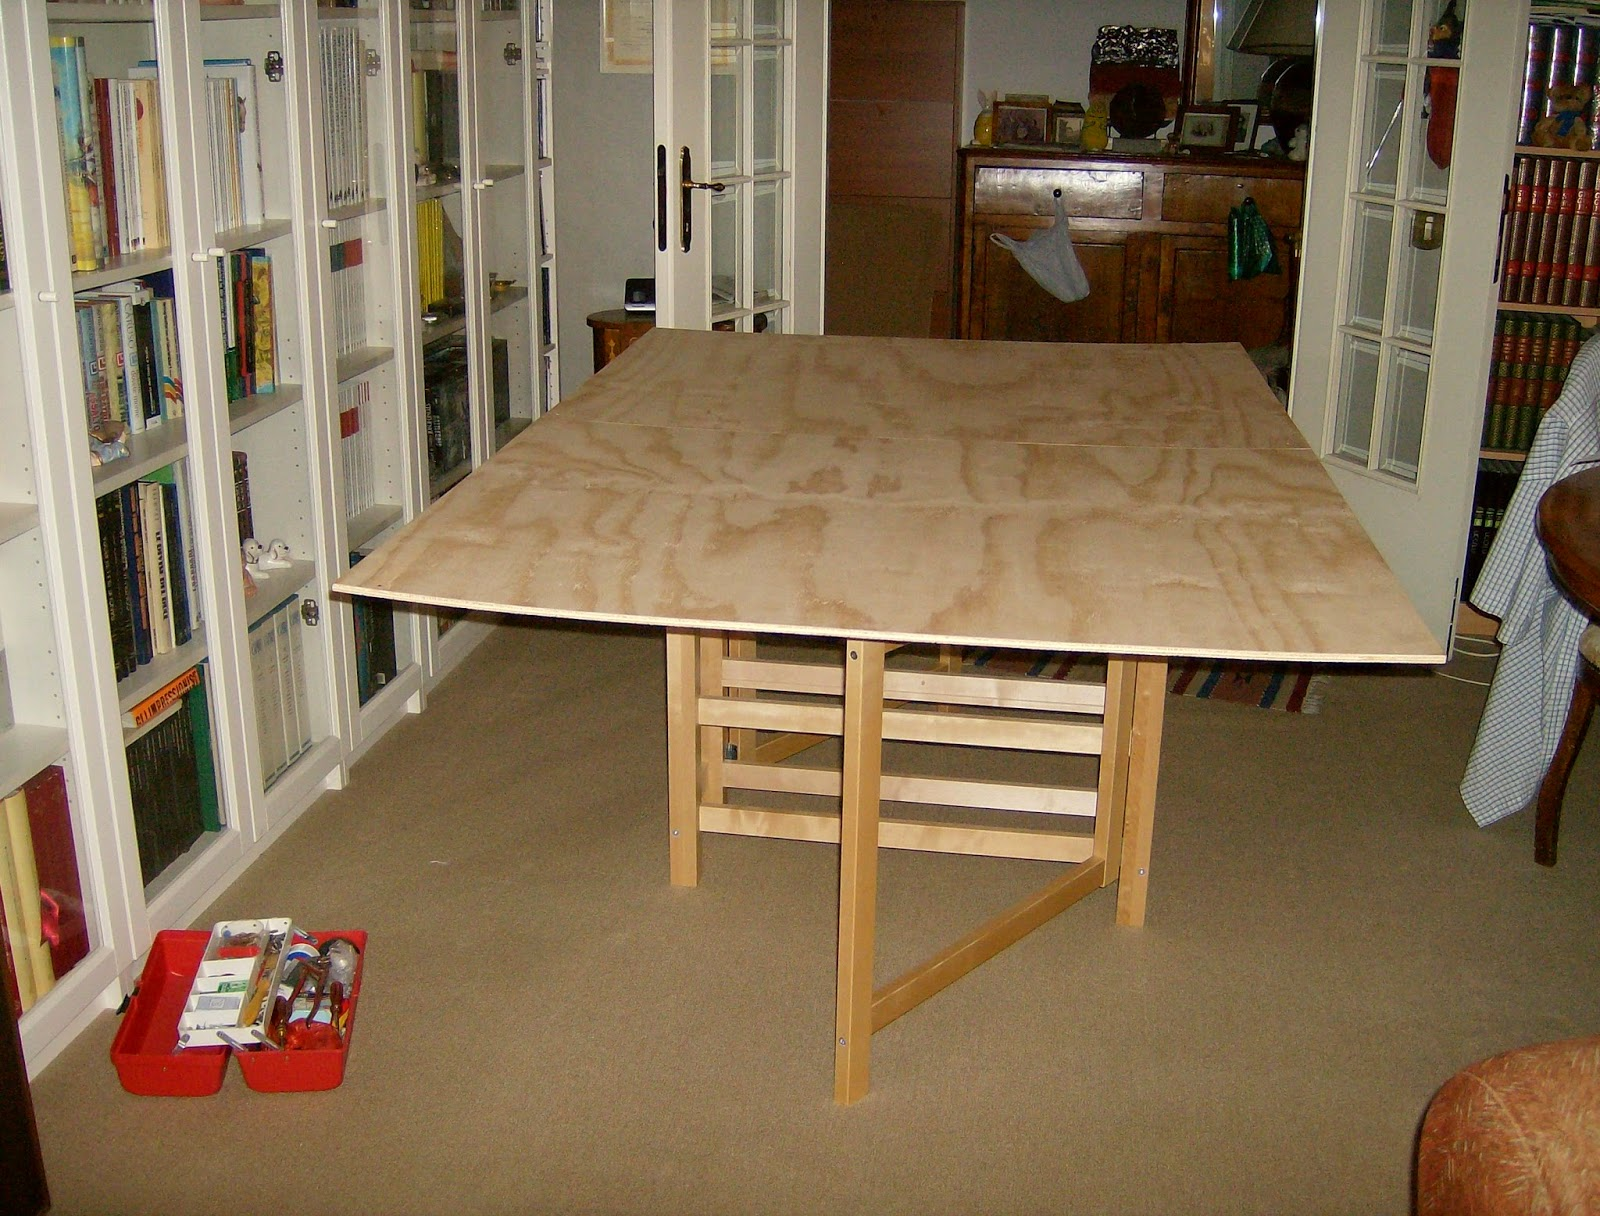 Ikea Esstisch Bjursta Erfahrung ~ wargame superimposed on the folding table Ikea (the central drawers